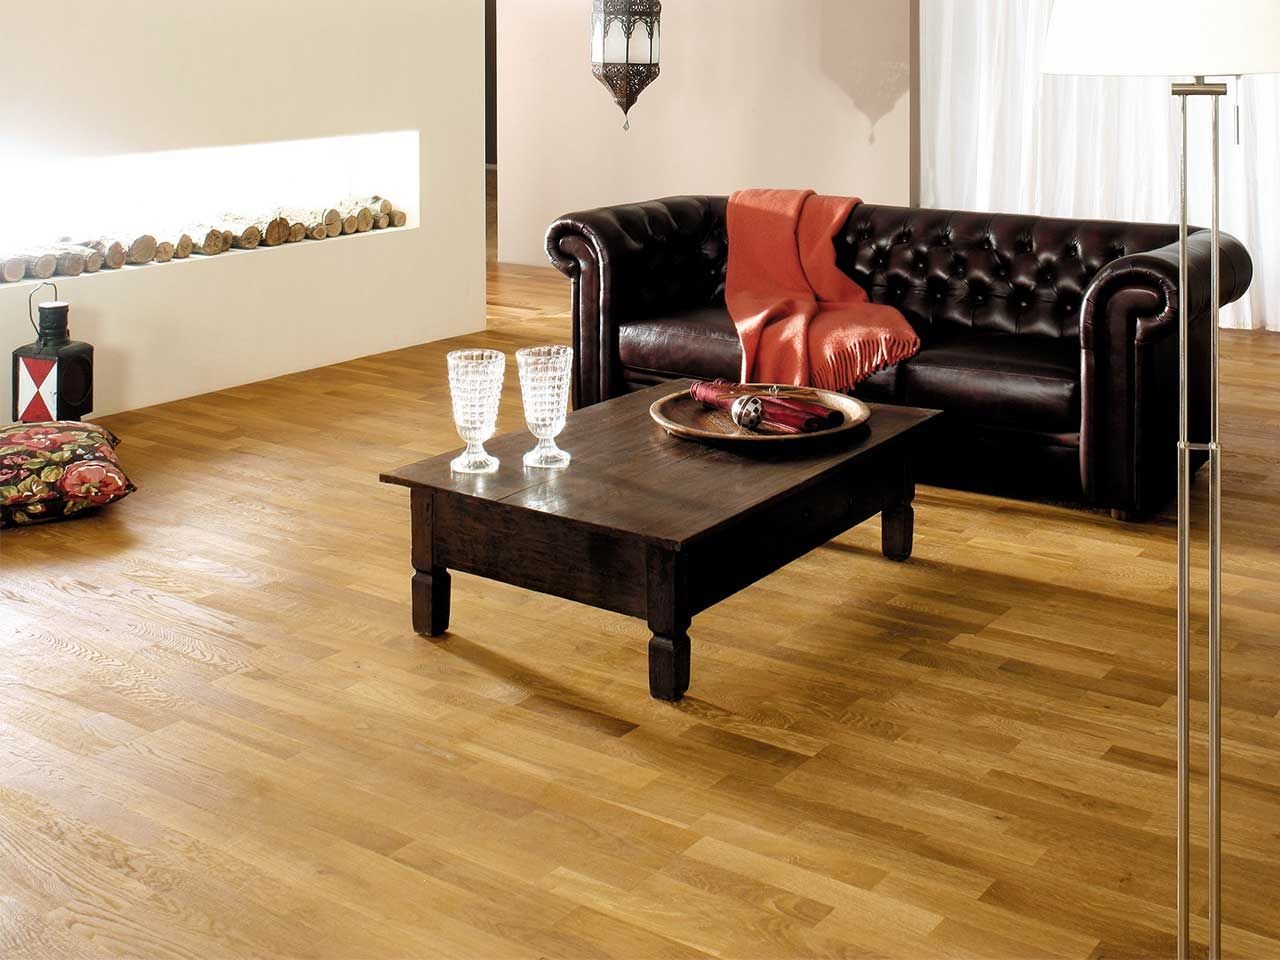 PARQUET IN ROVERE 3 STRIP PREZZO INCREDIBILE. Venduto da ...